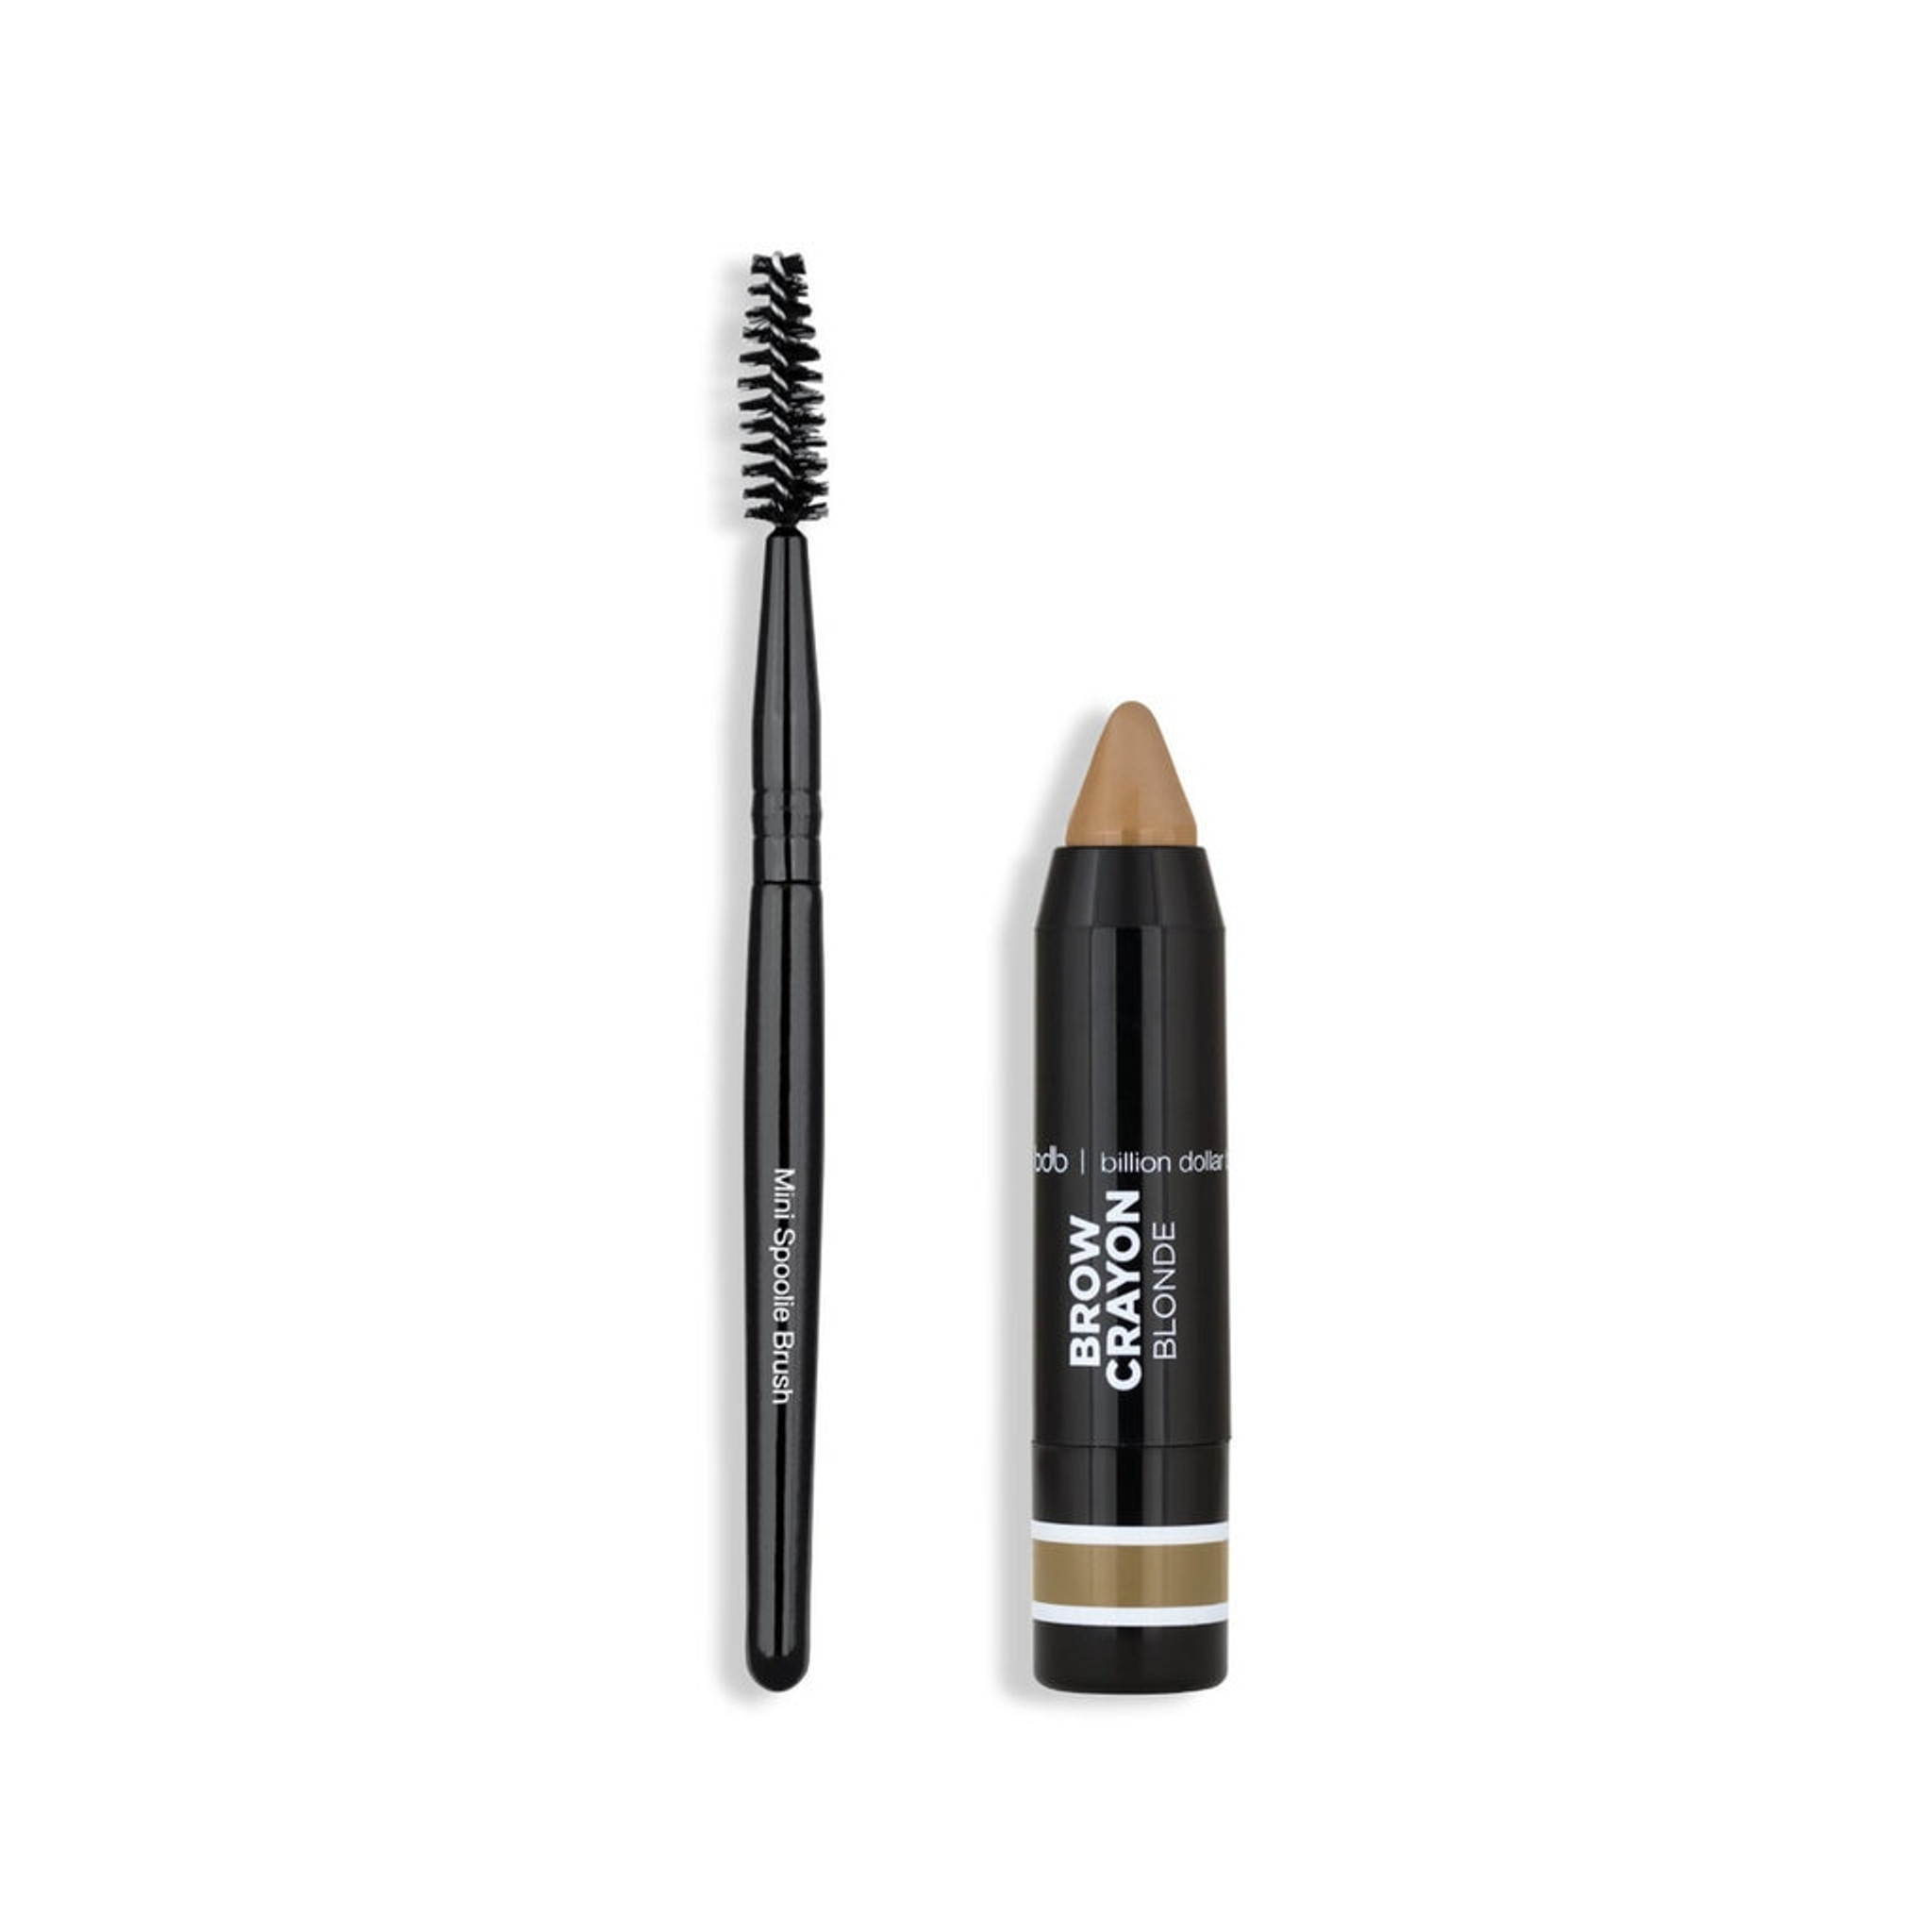 bdb 60 seconds to beautiful brows kit